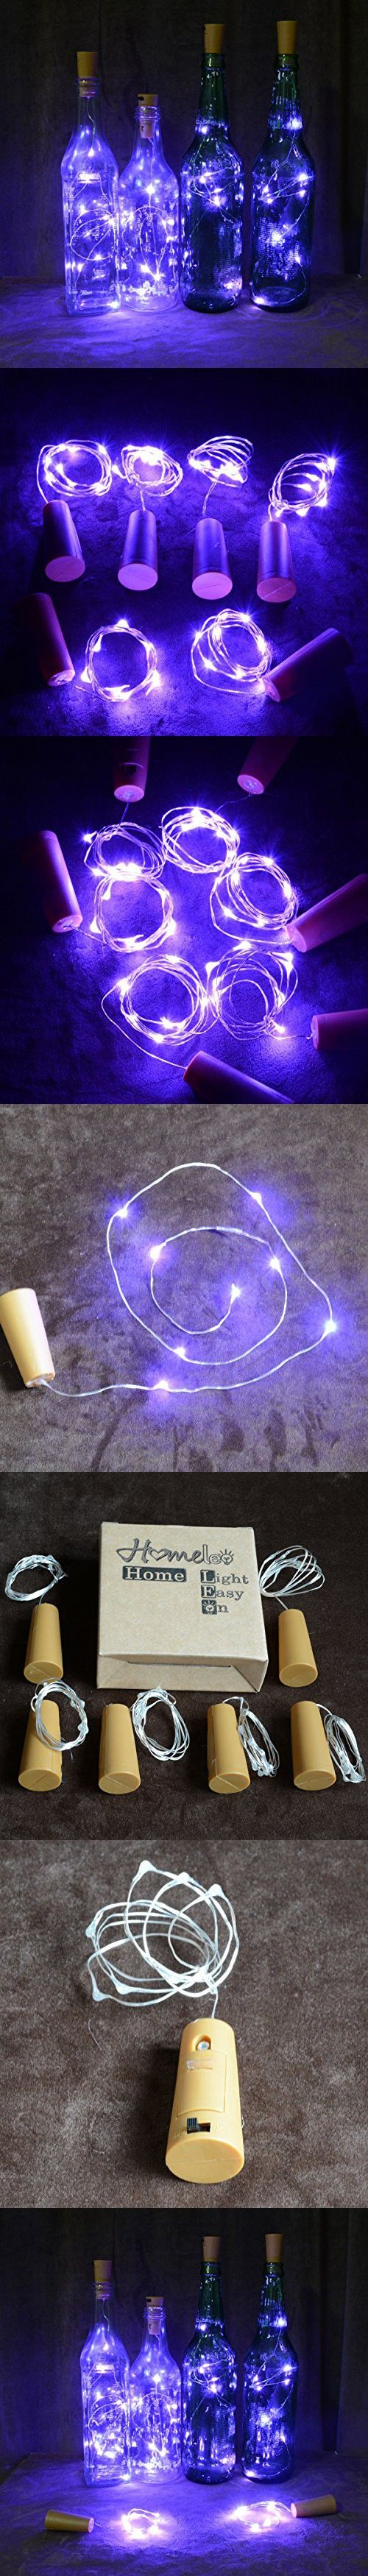 Homeleo Wine Bottle Cork Lights Copper Wire String Lights for Wedding, Festival, Party Decor (6Pack, Purple)